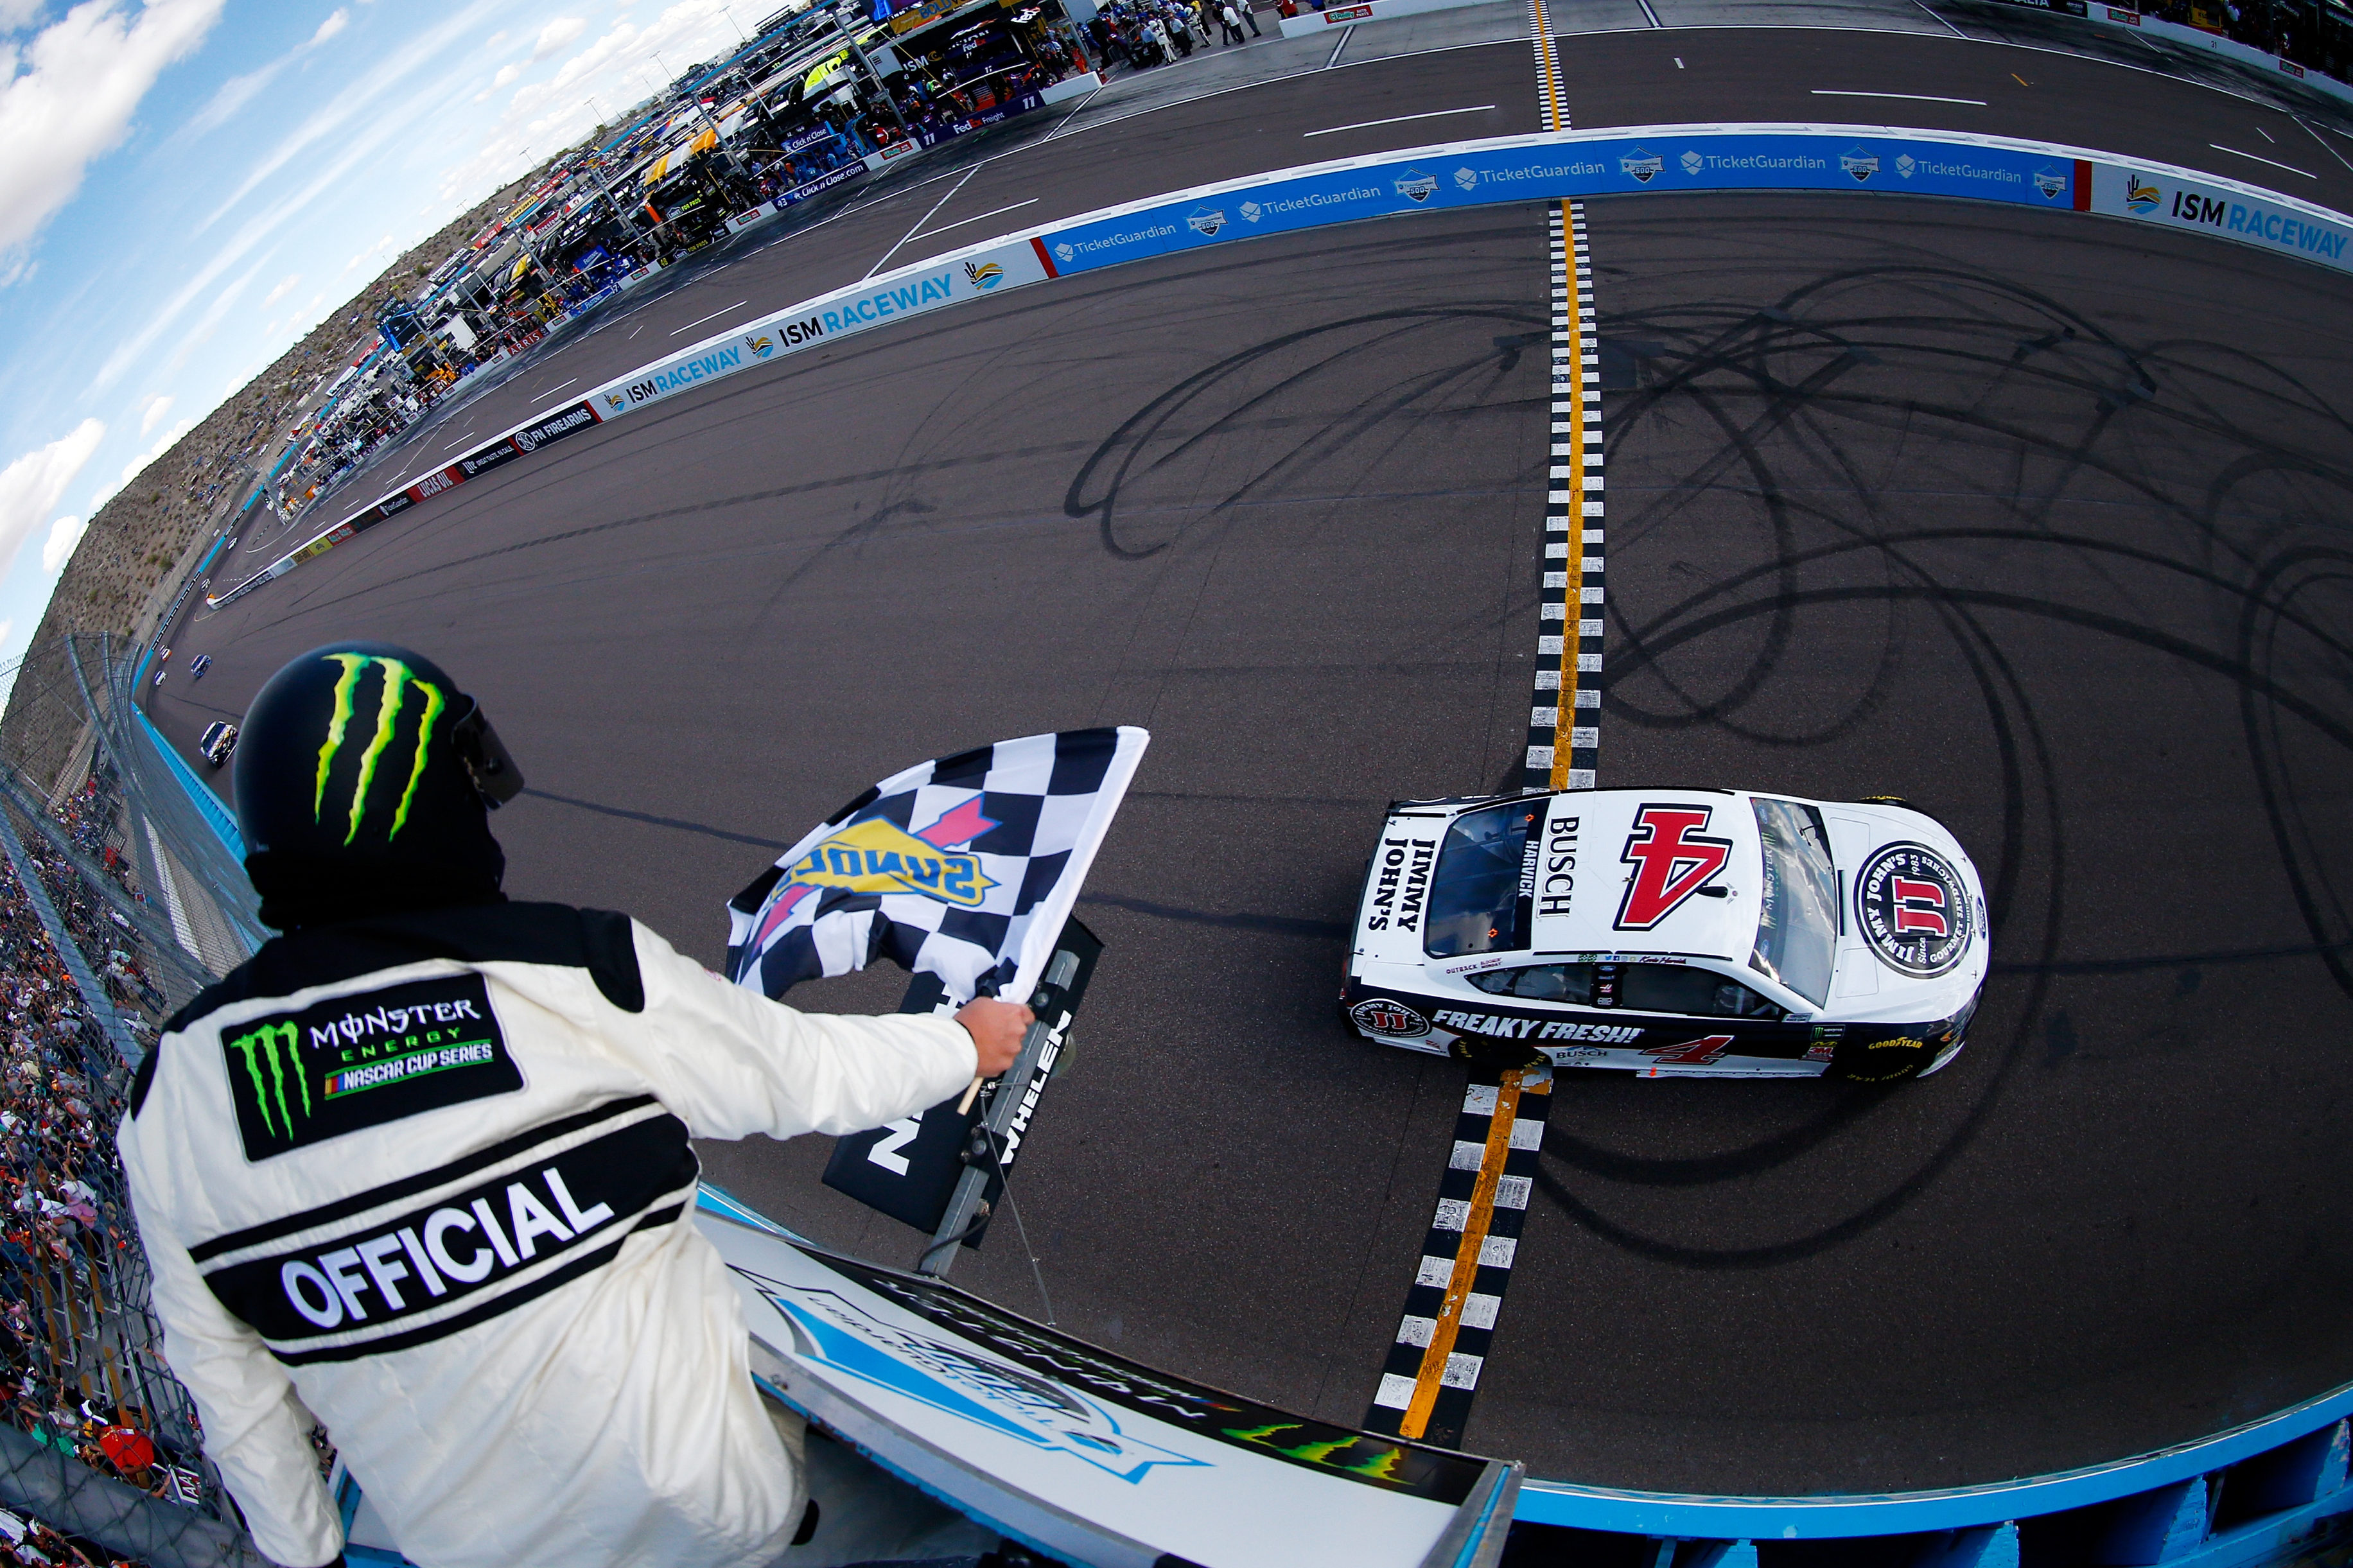 Kevin Harvick wins the Monster Energy NASCAR Cup Series event at ISM Raceway